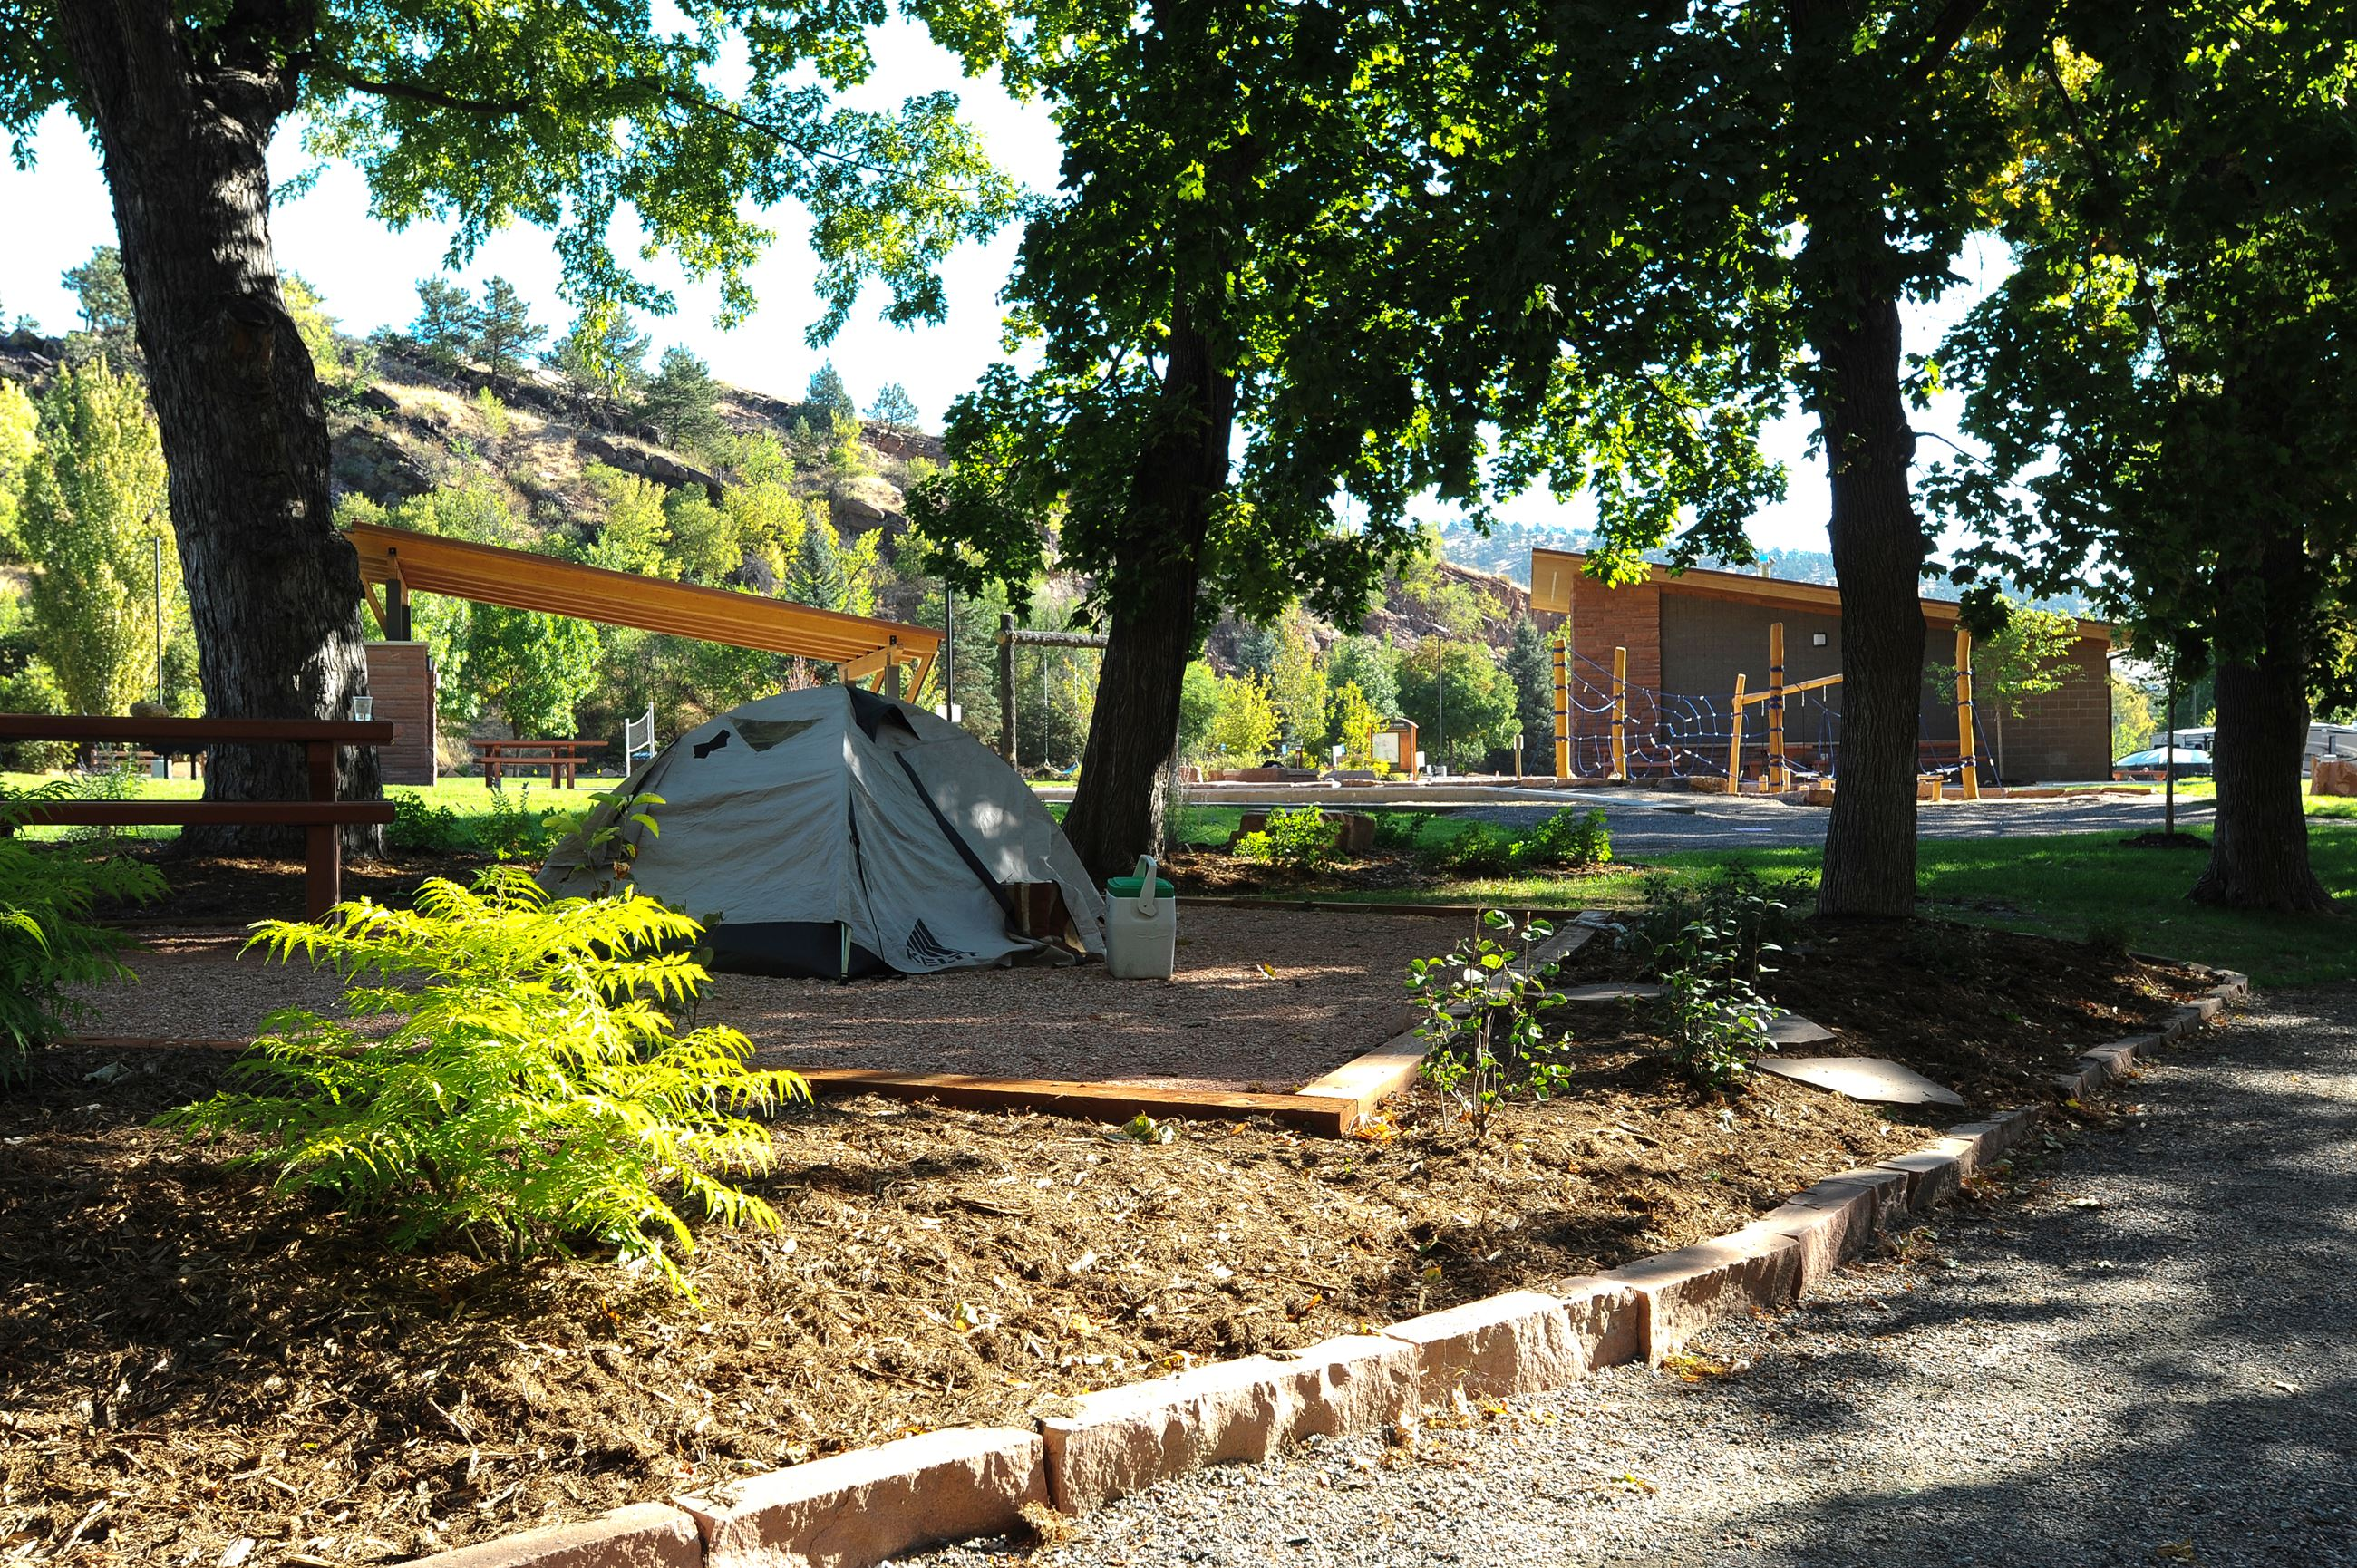 Camping in LaVern Park_Photo by Krische Construction 47_lightened